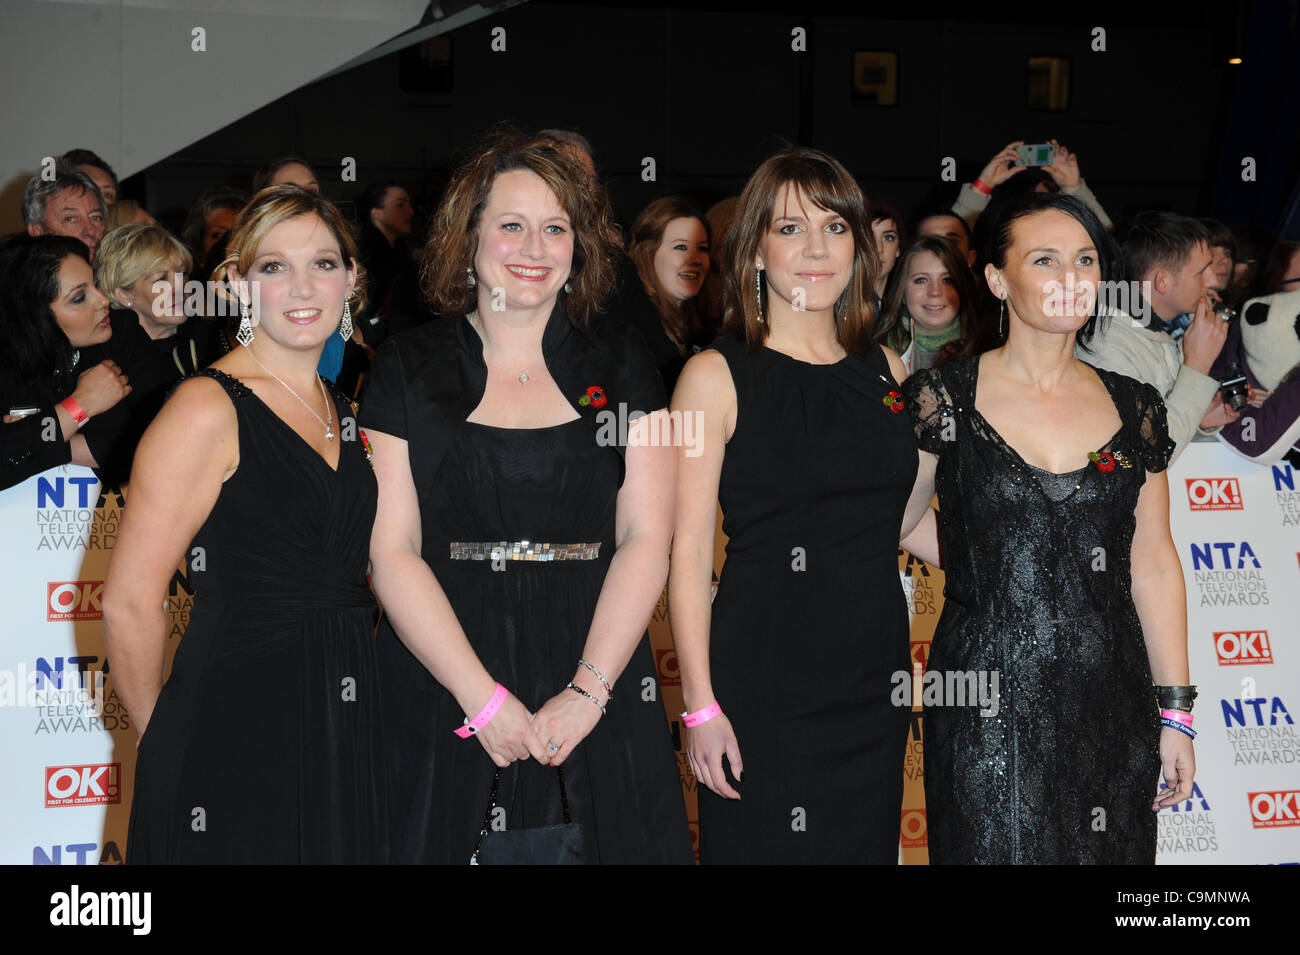 MEMBERS OF MILITARY WIVES 2012 NATIONAL TELEVISION AWARDS O2 ARENA LONDON ENGLAND 25 January 2012 - Stock Image